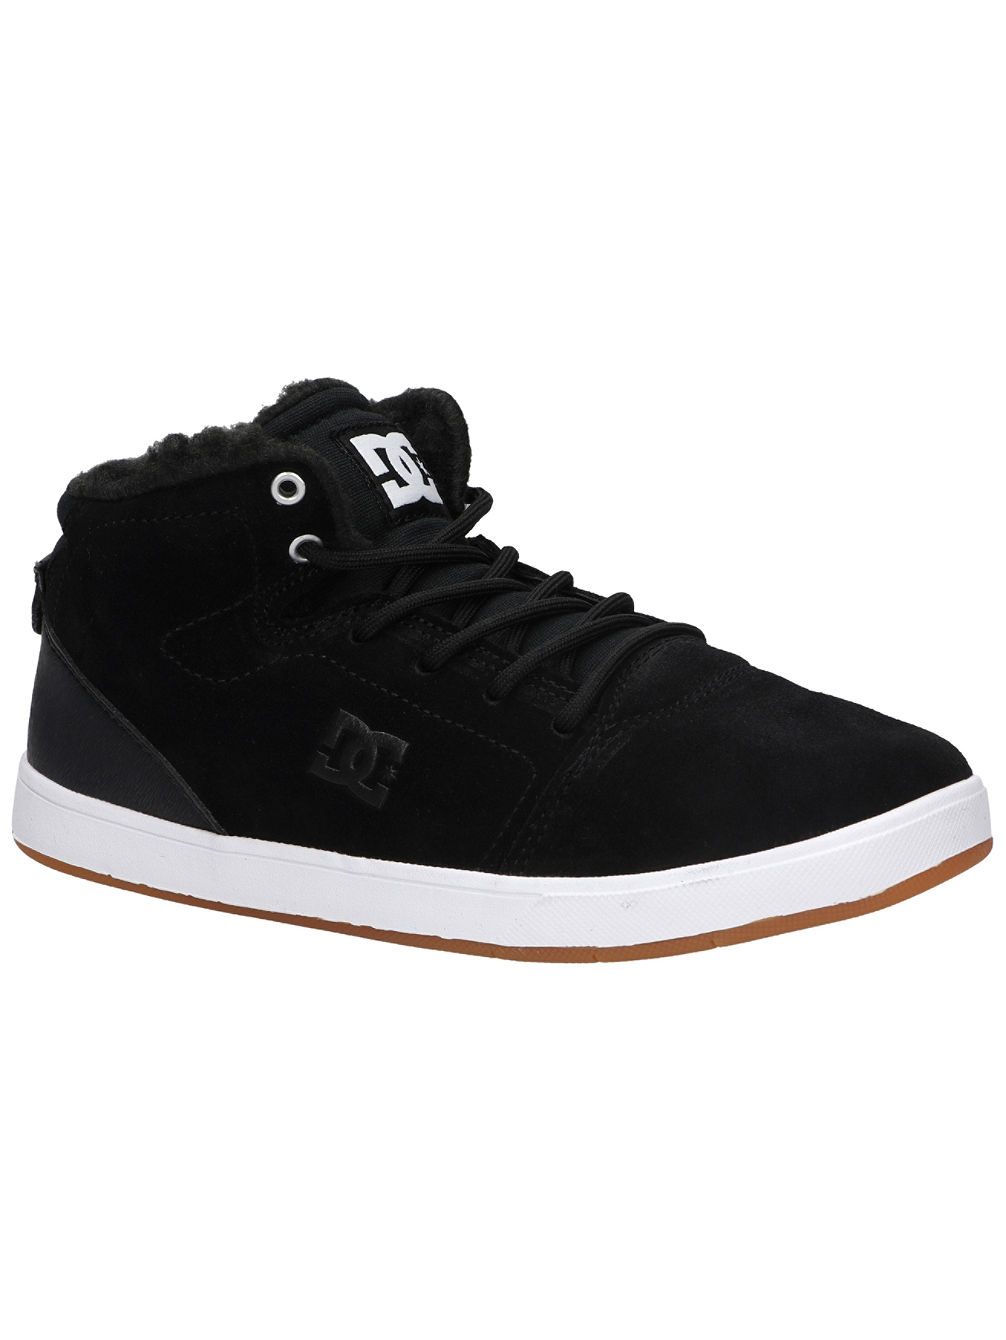 Crisis High Wnt Sneakers